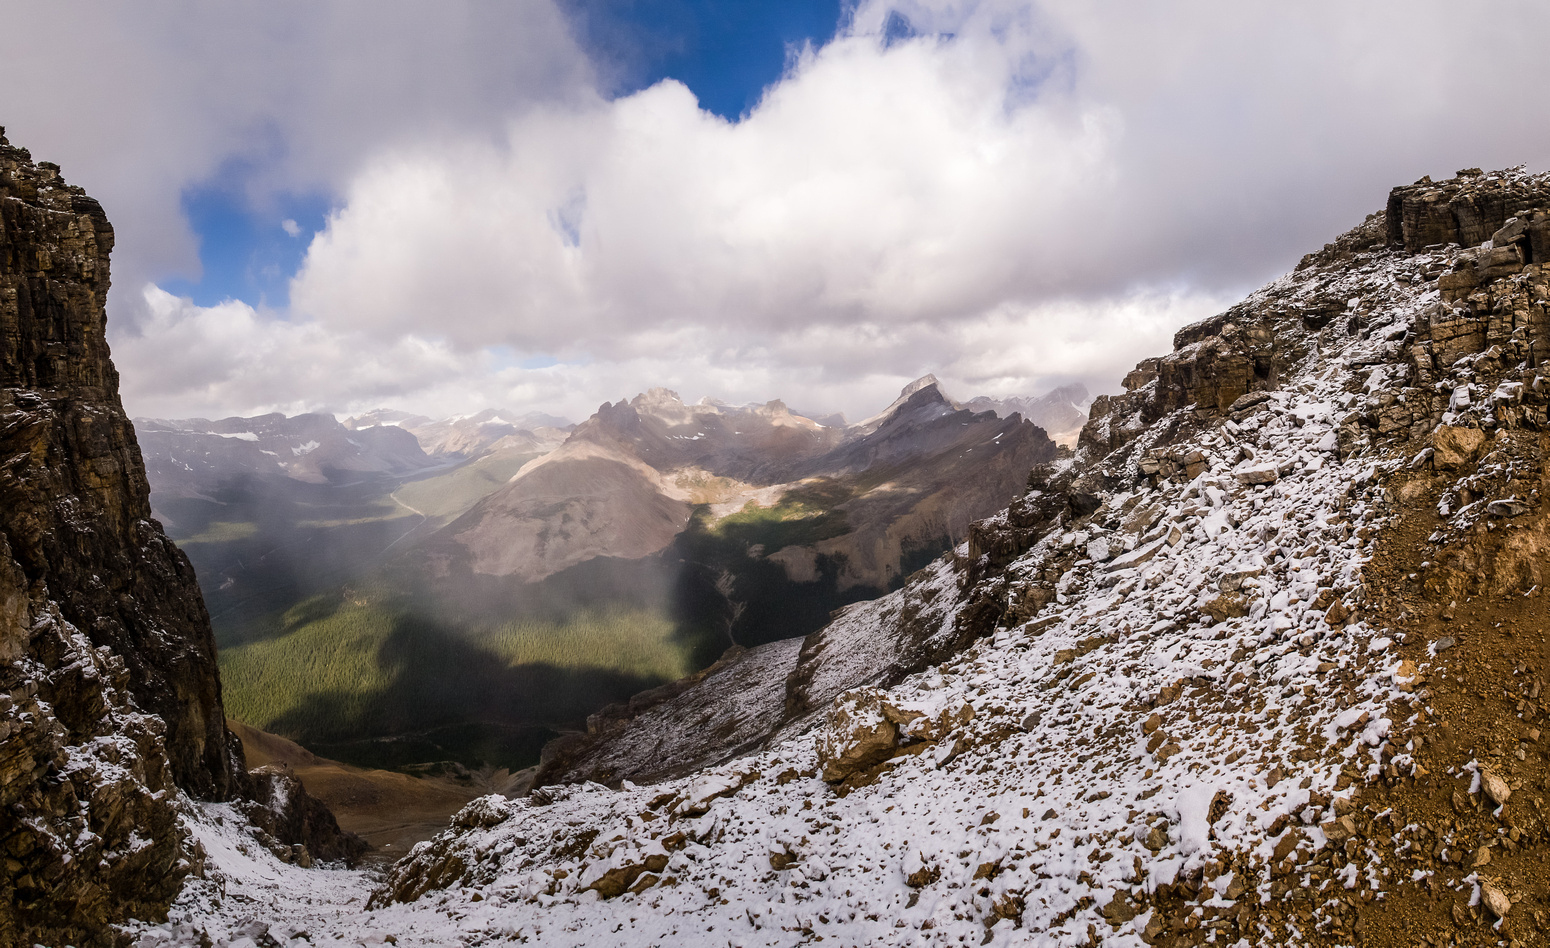 Views over Dolomite Pass to the north include Dolomite and Puzzle Peak.